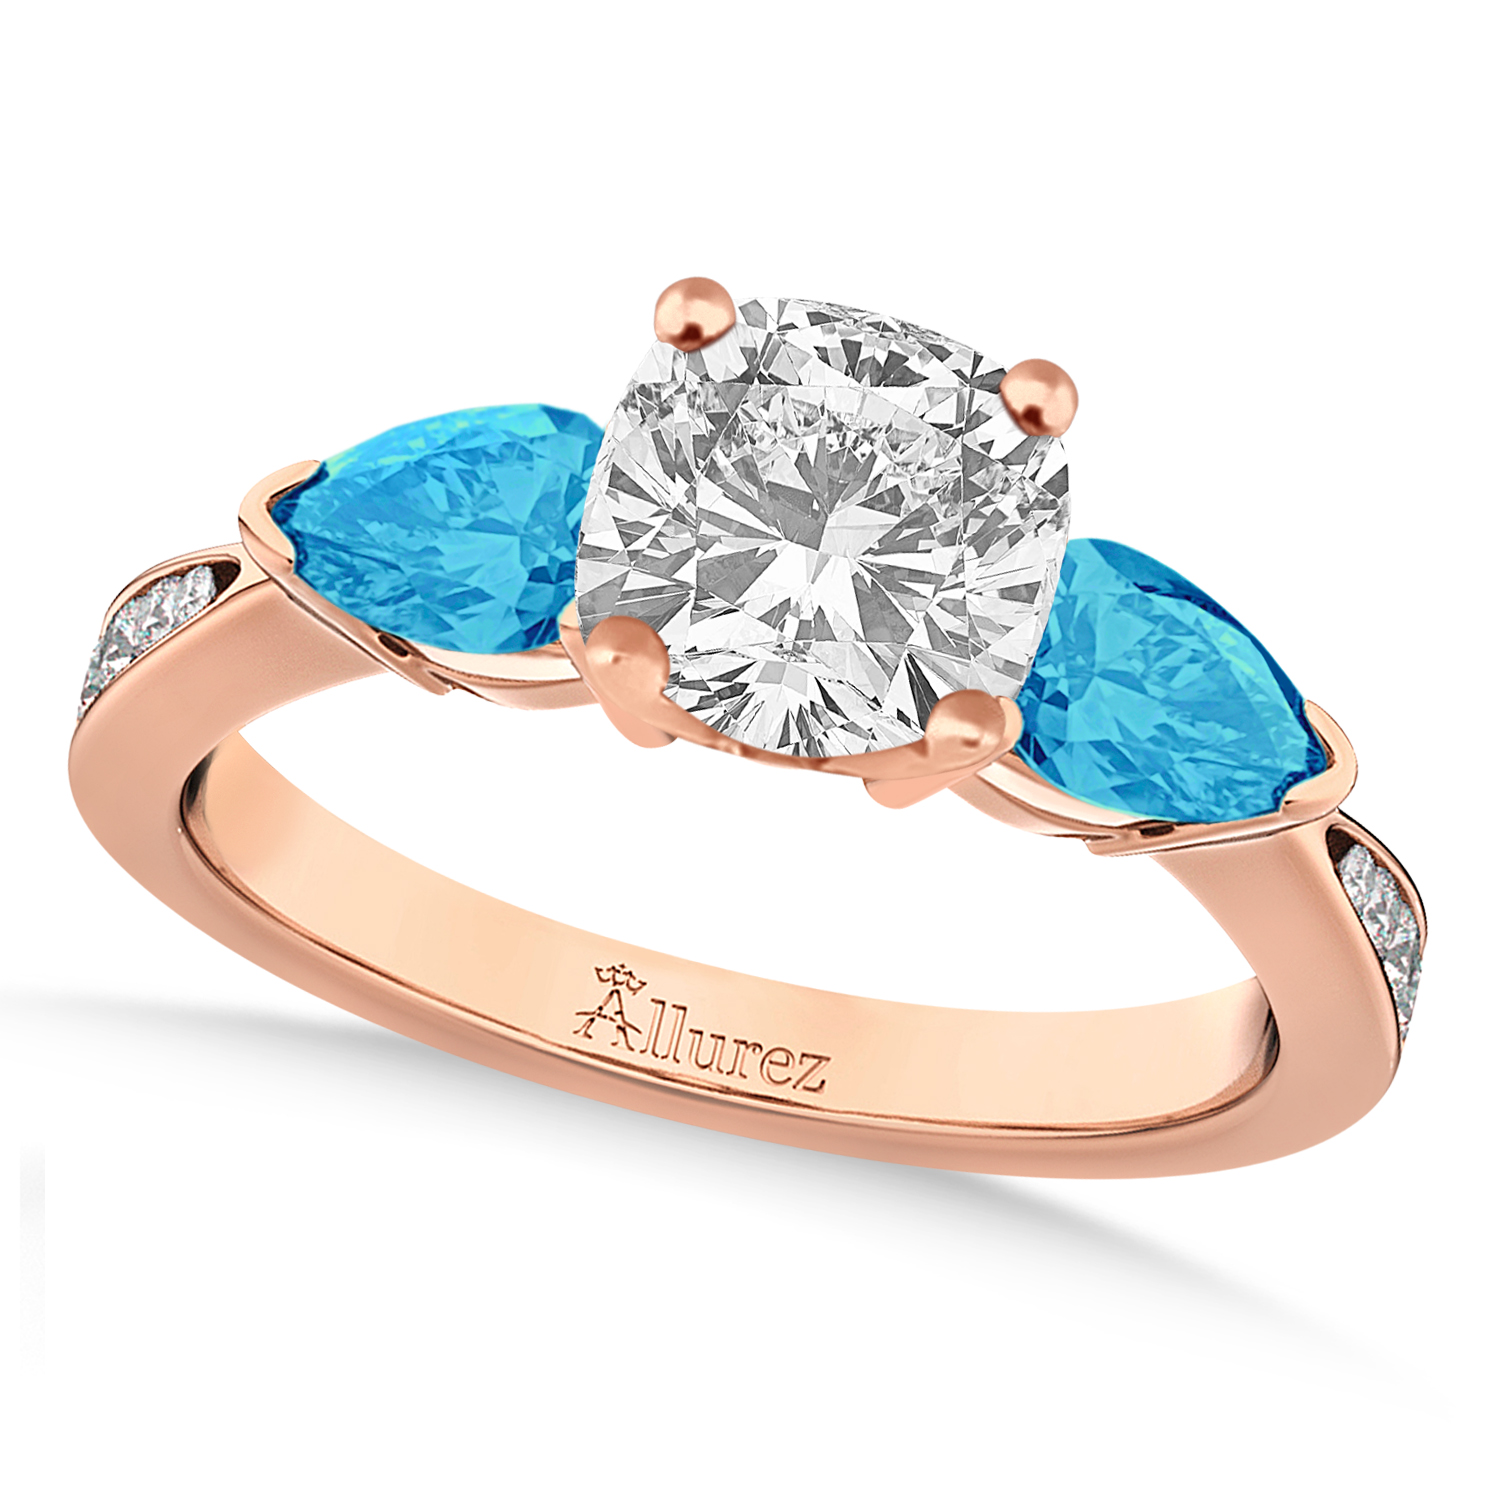 Cushion Diamond & Pear Blue Topaz Engagement Ring 14k Rose Gold (1.29ct)